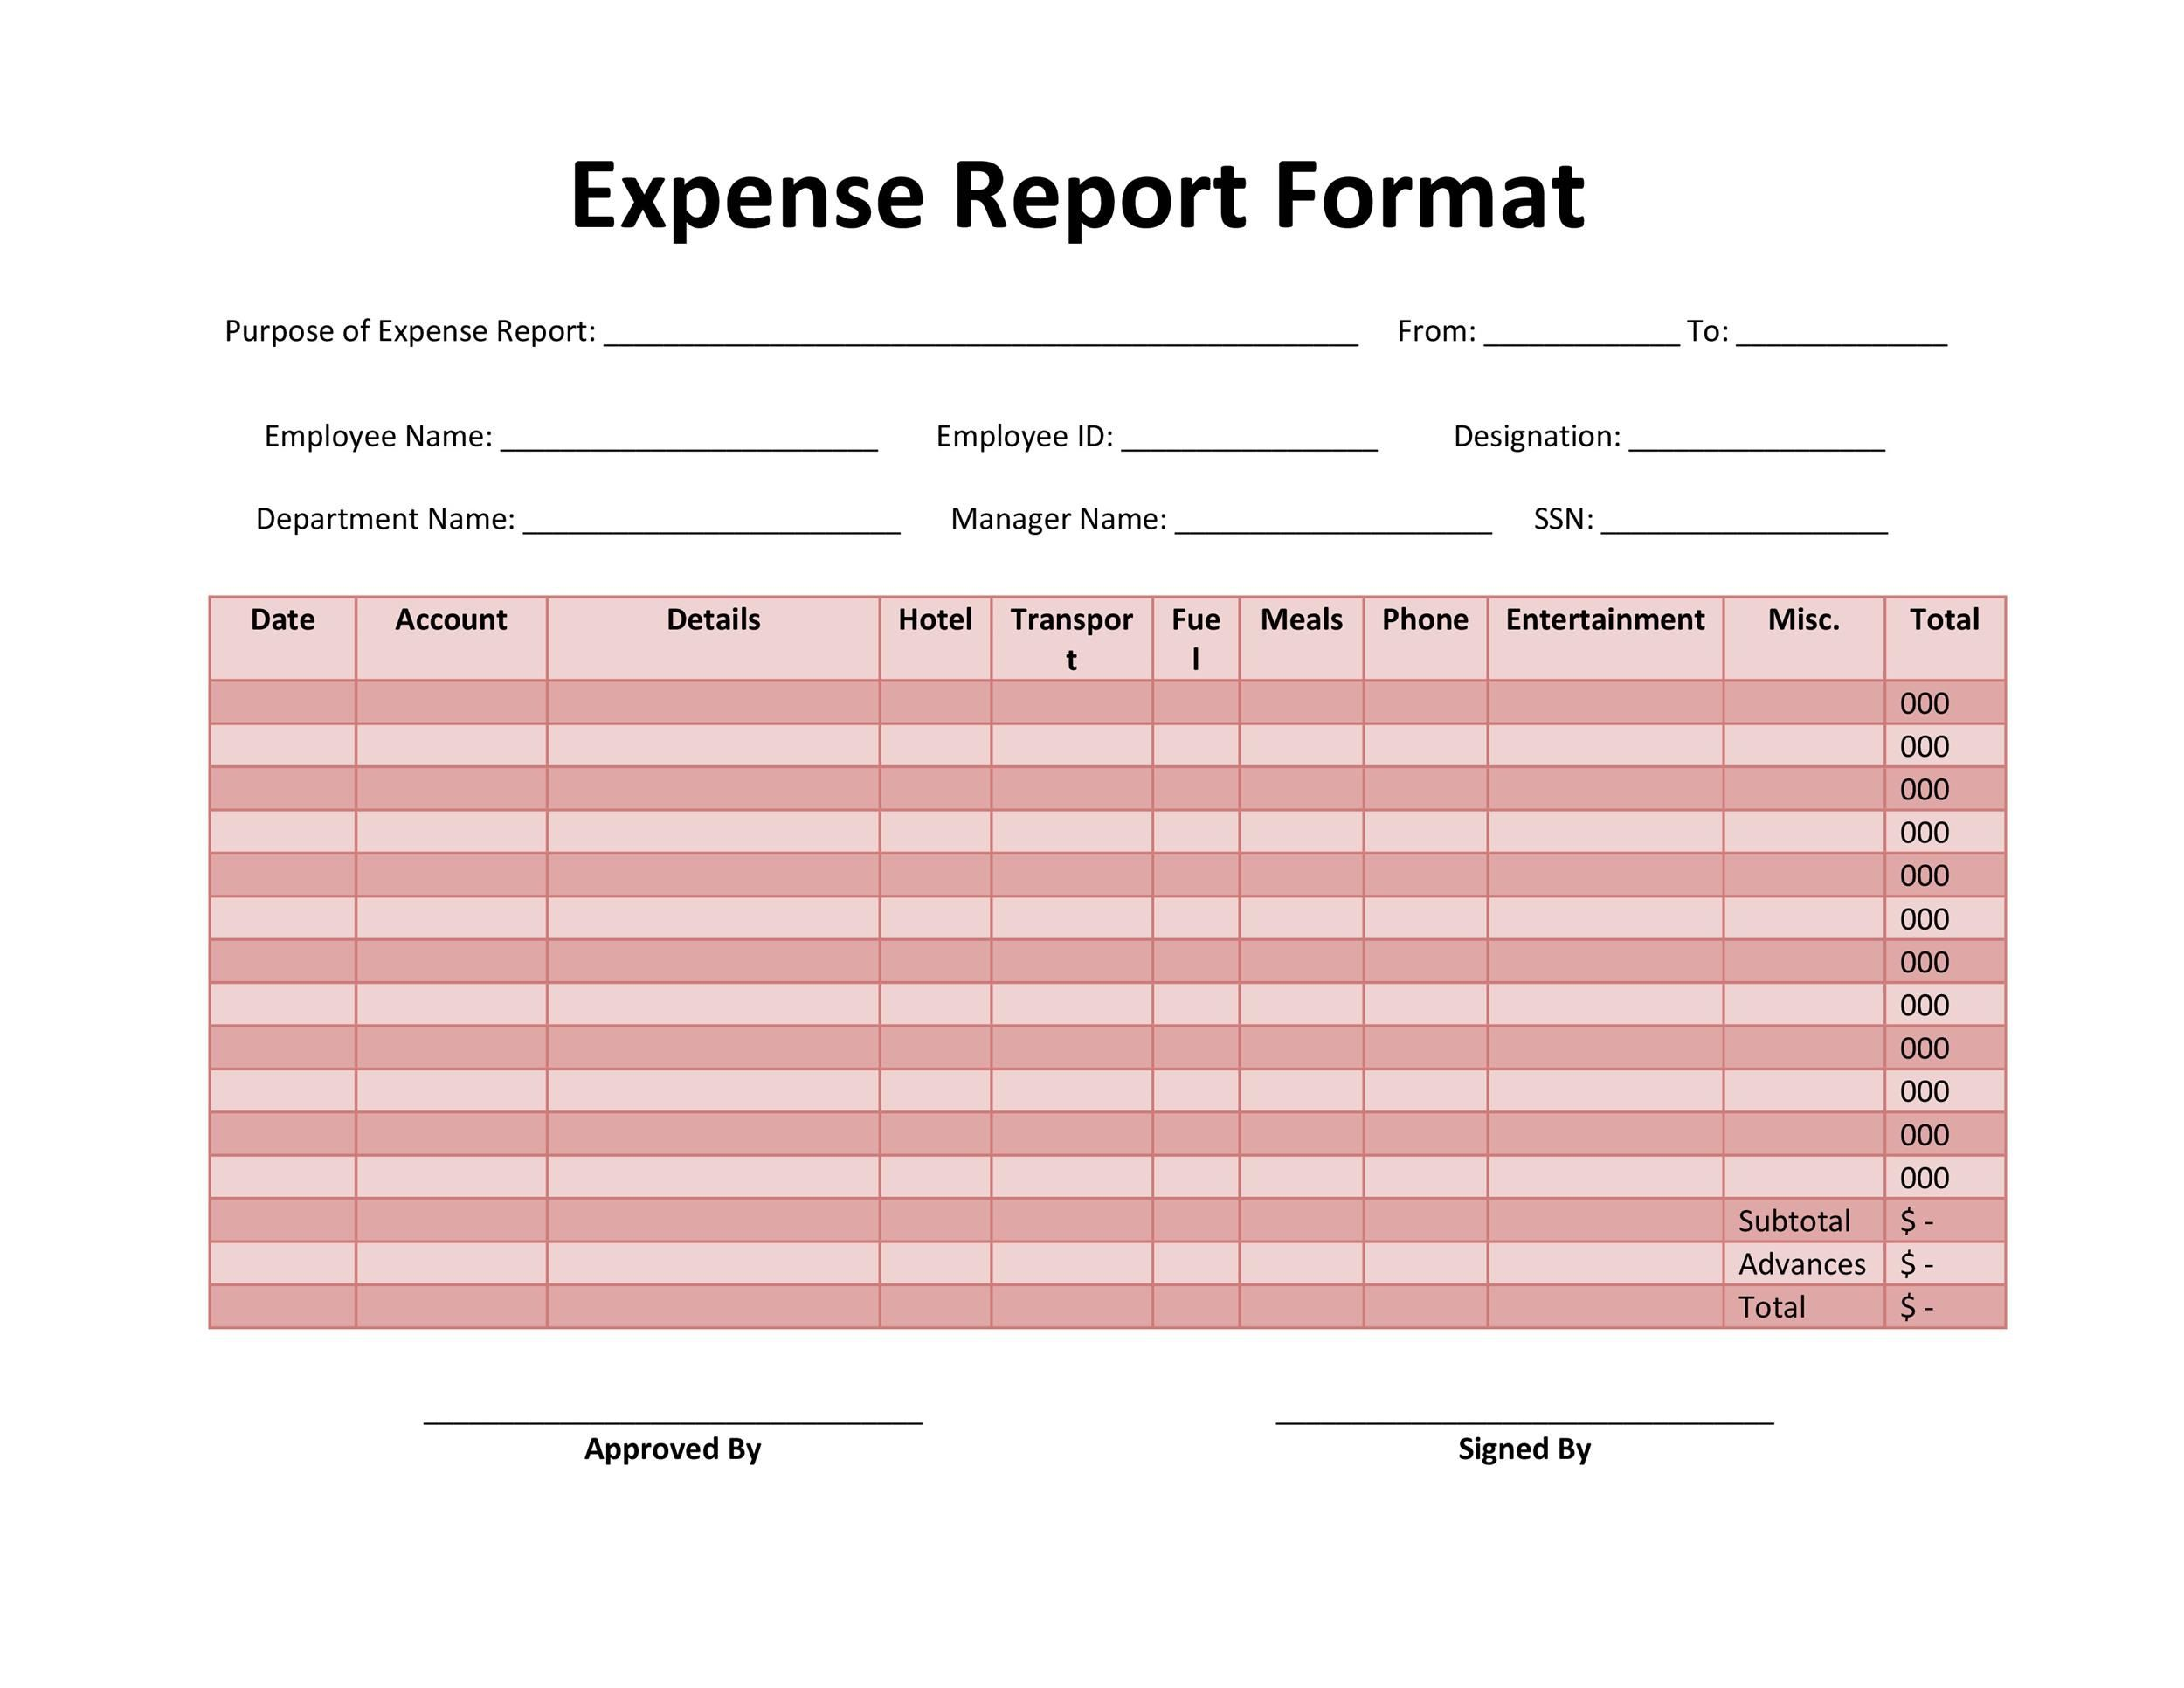 003 Archaicawful Travel Expense Report Template Highest Quality  Format Excel Free